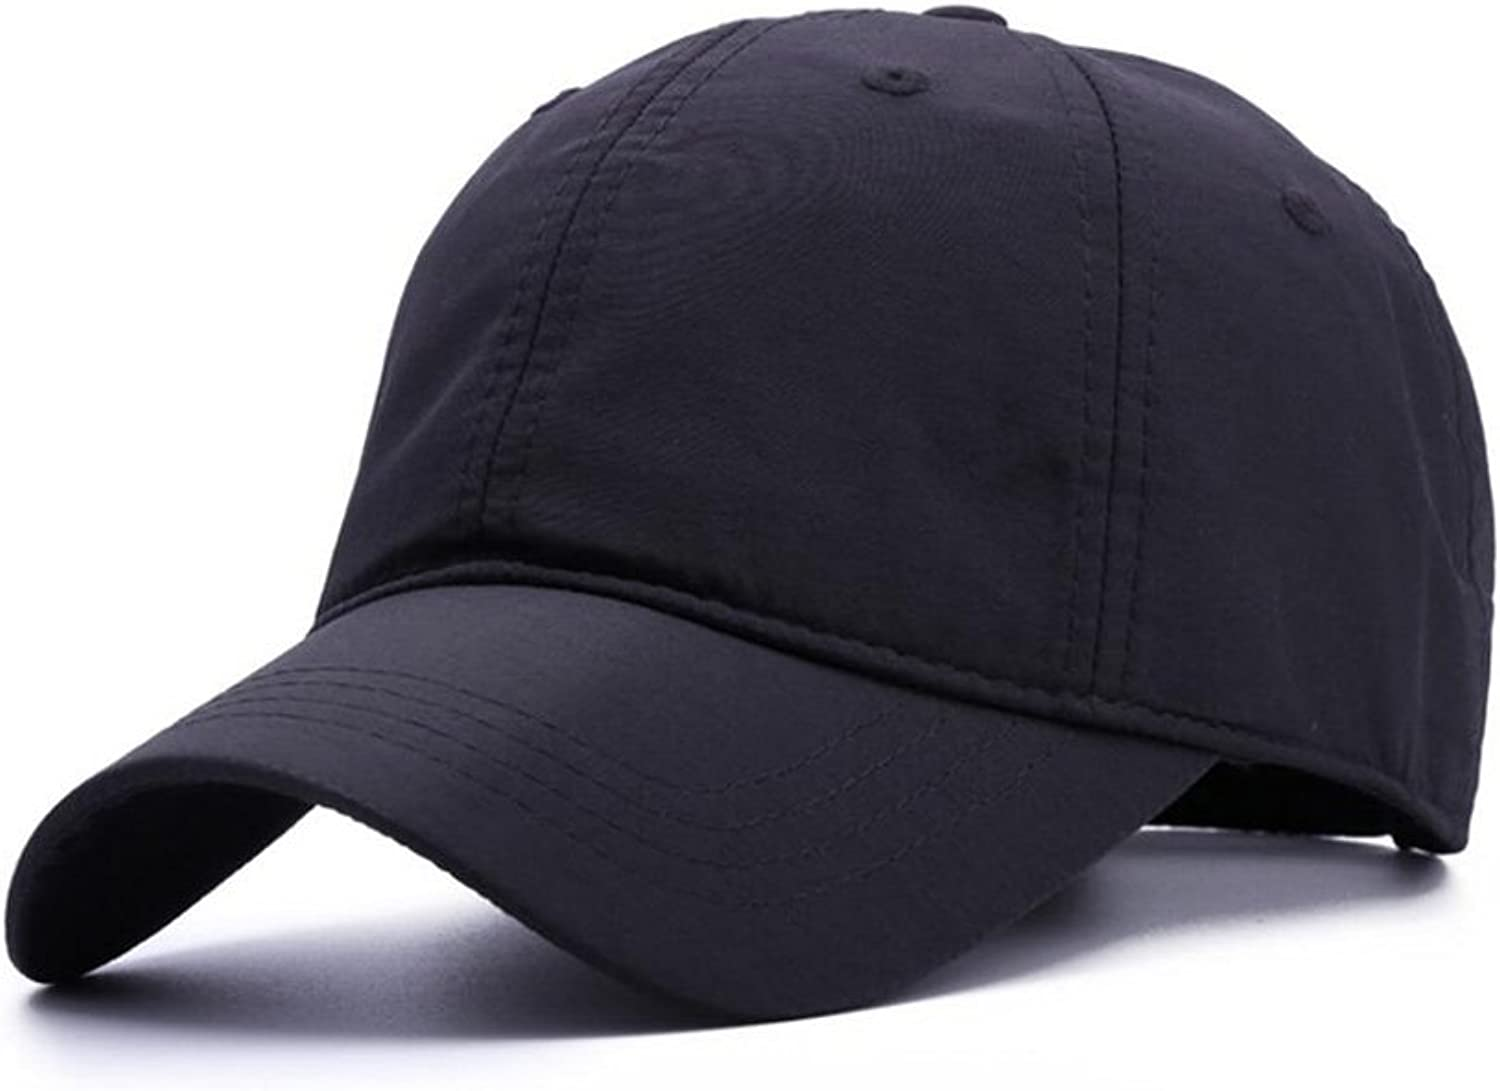 CJC Sun Hats Men Women Unisex Outdoor Trekking Camping Cotton